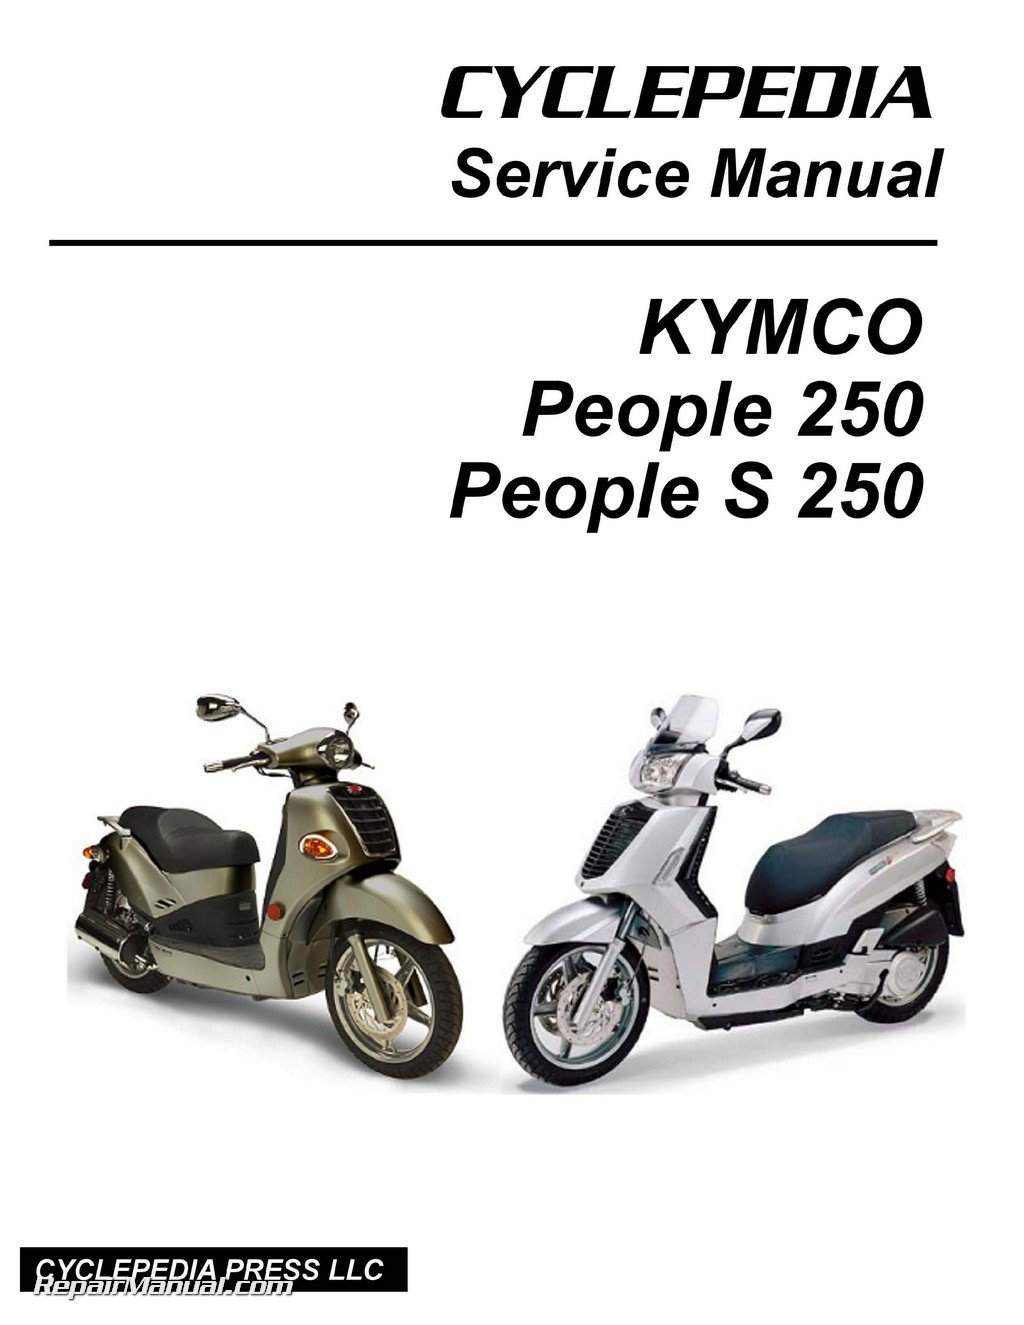 CPP-206-Print KYMCO People 250 and S 250 Scooter Service Manual Printed by  CYCLEPEDIA: Manufacturer: Amazon.com: Books